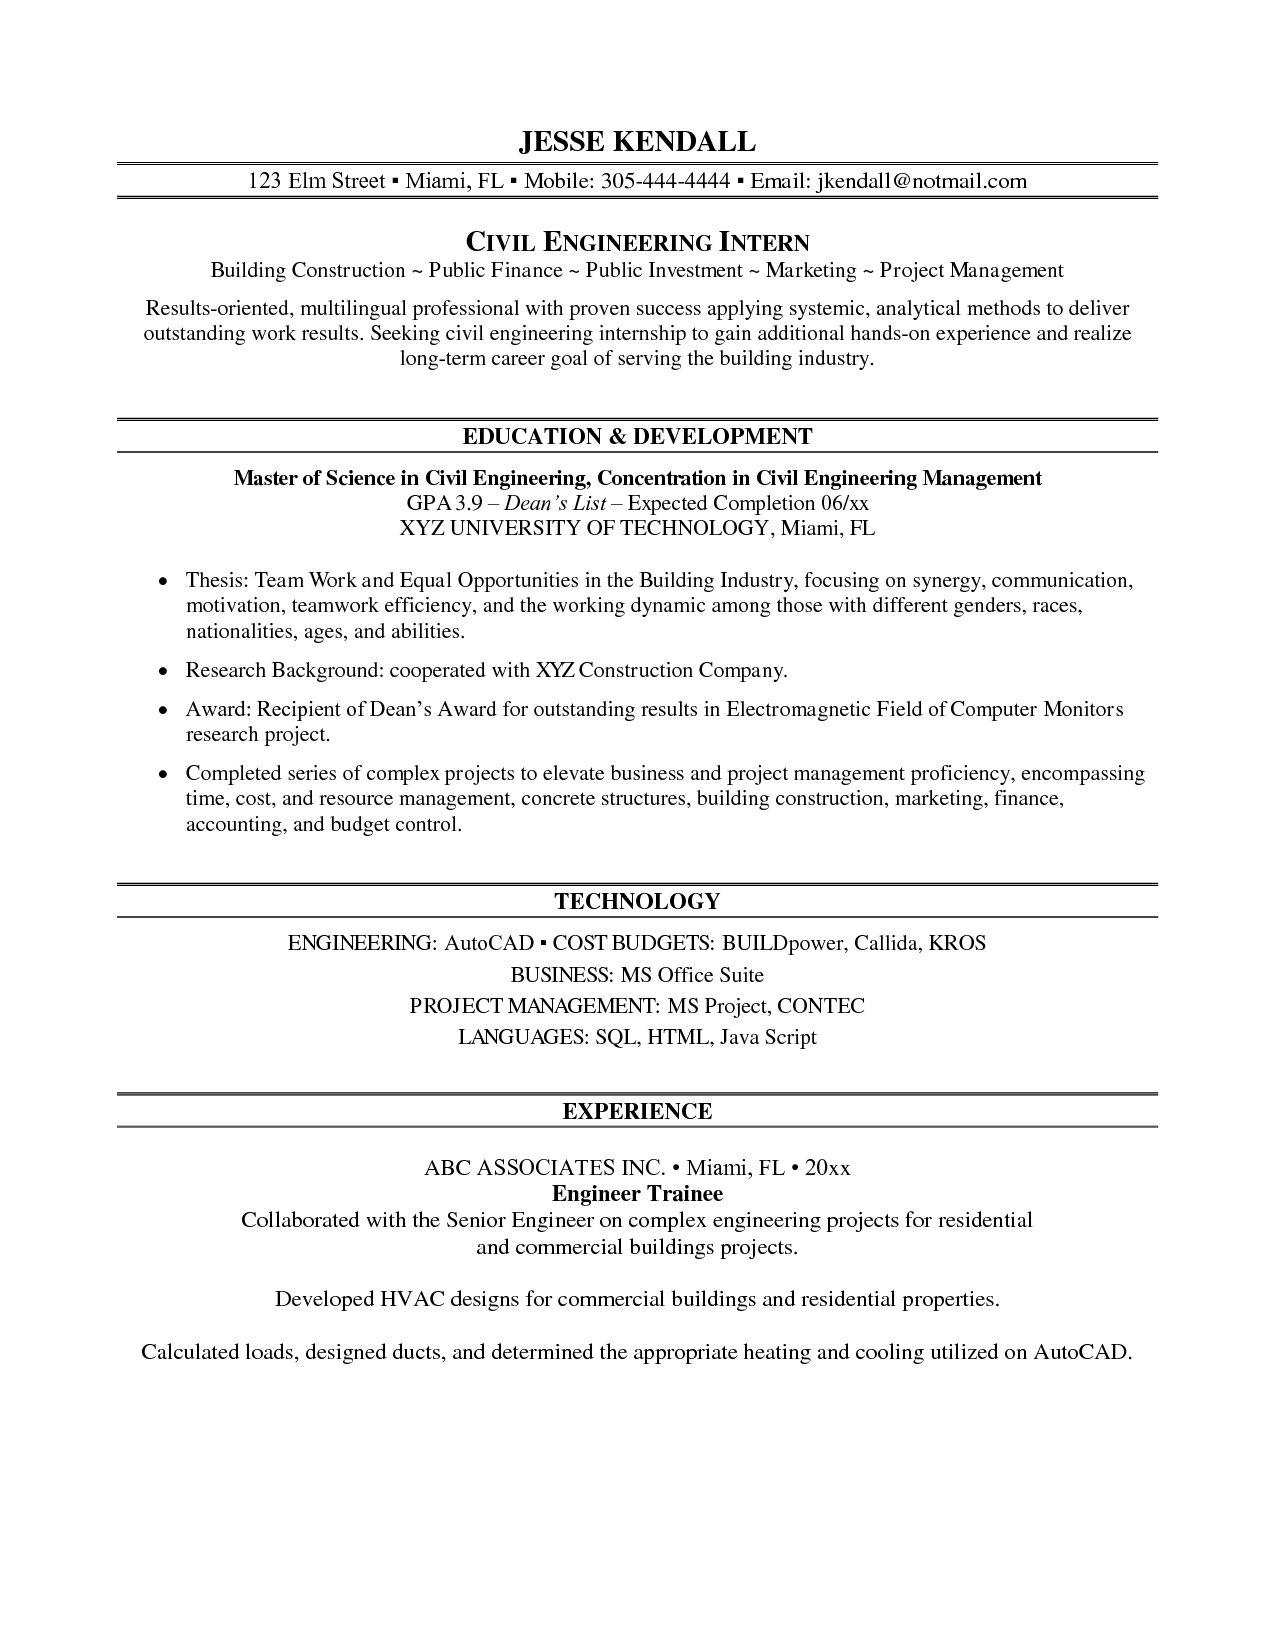 resume How To Write A Good Resume For Internship internship on resume best template collection httpwww jobresume keywords civil engineer intern cover letter examples engineering free builder home design id